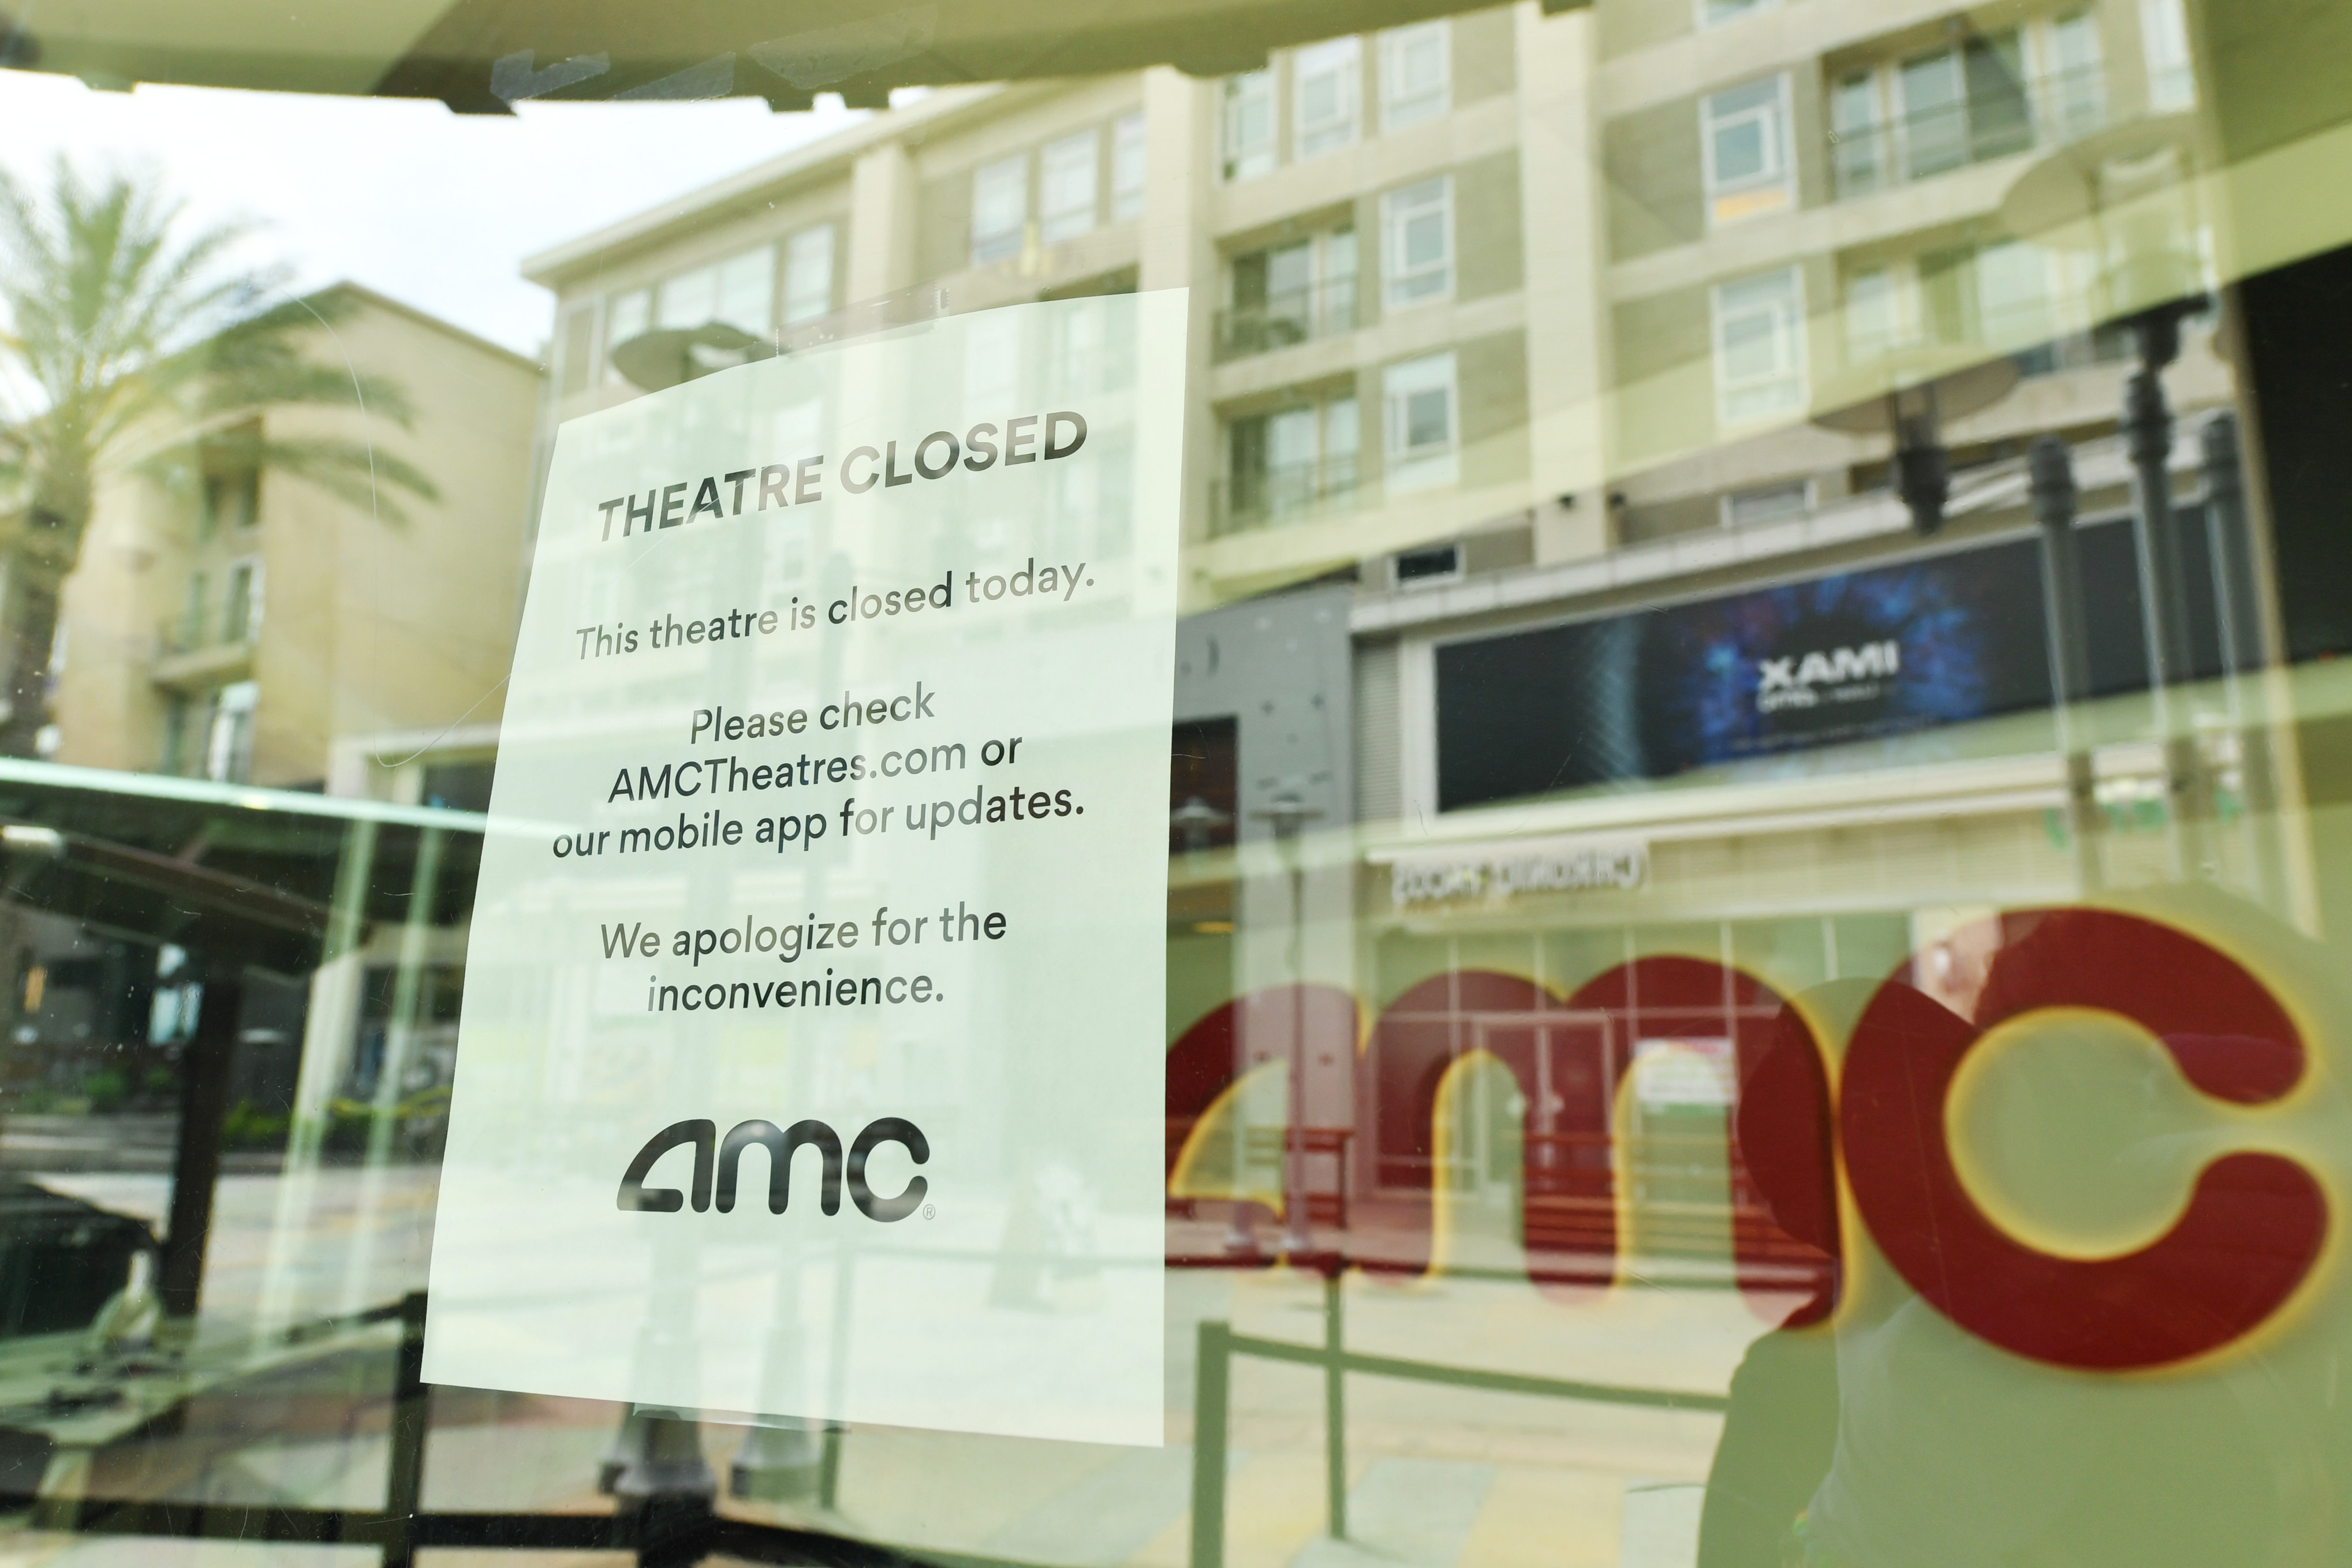 Outside of AMC Burbank 16 on April 17, 2020 in Burbank, CA. Due to COVID-19, AMC Theatres were forced to close all global locations in March.